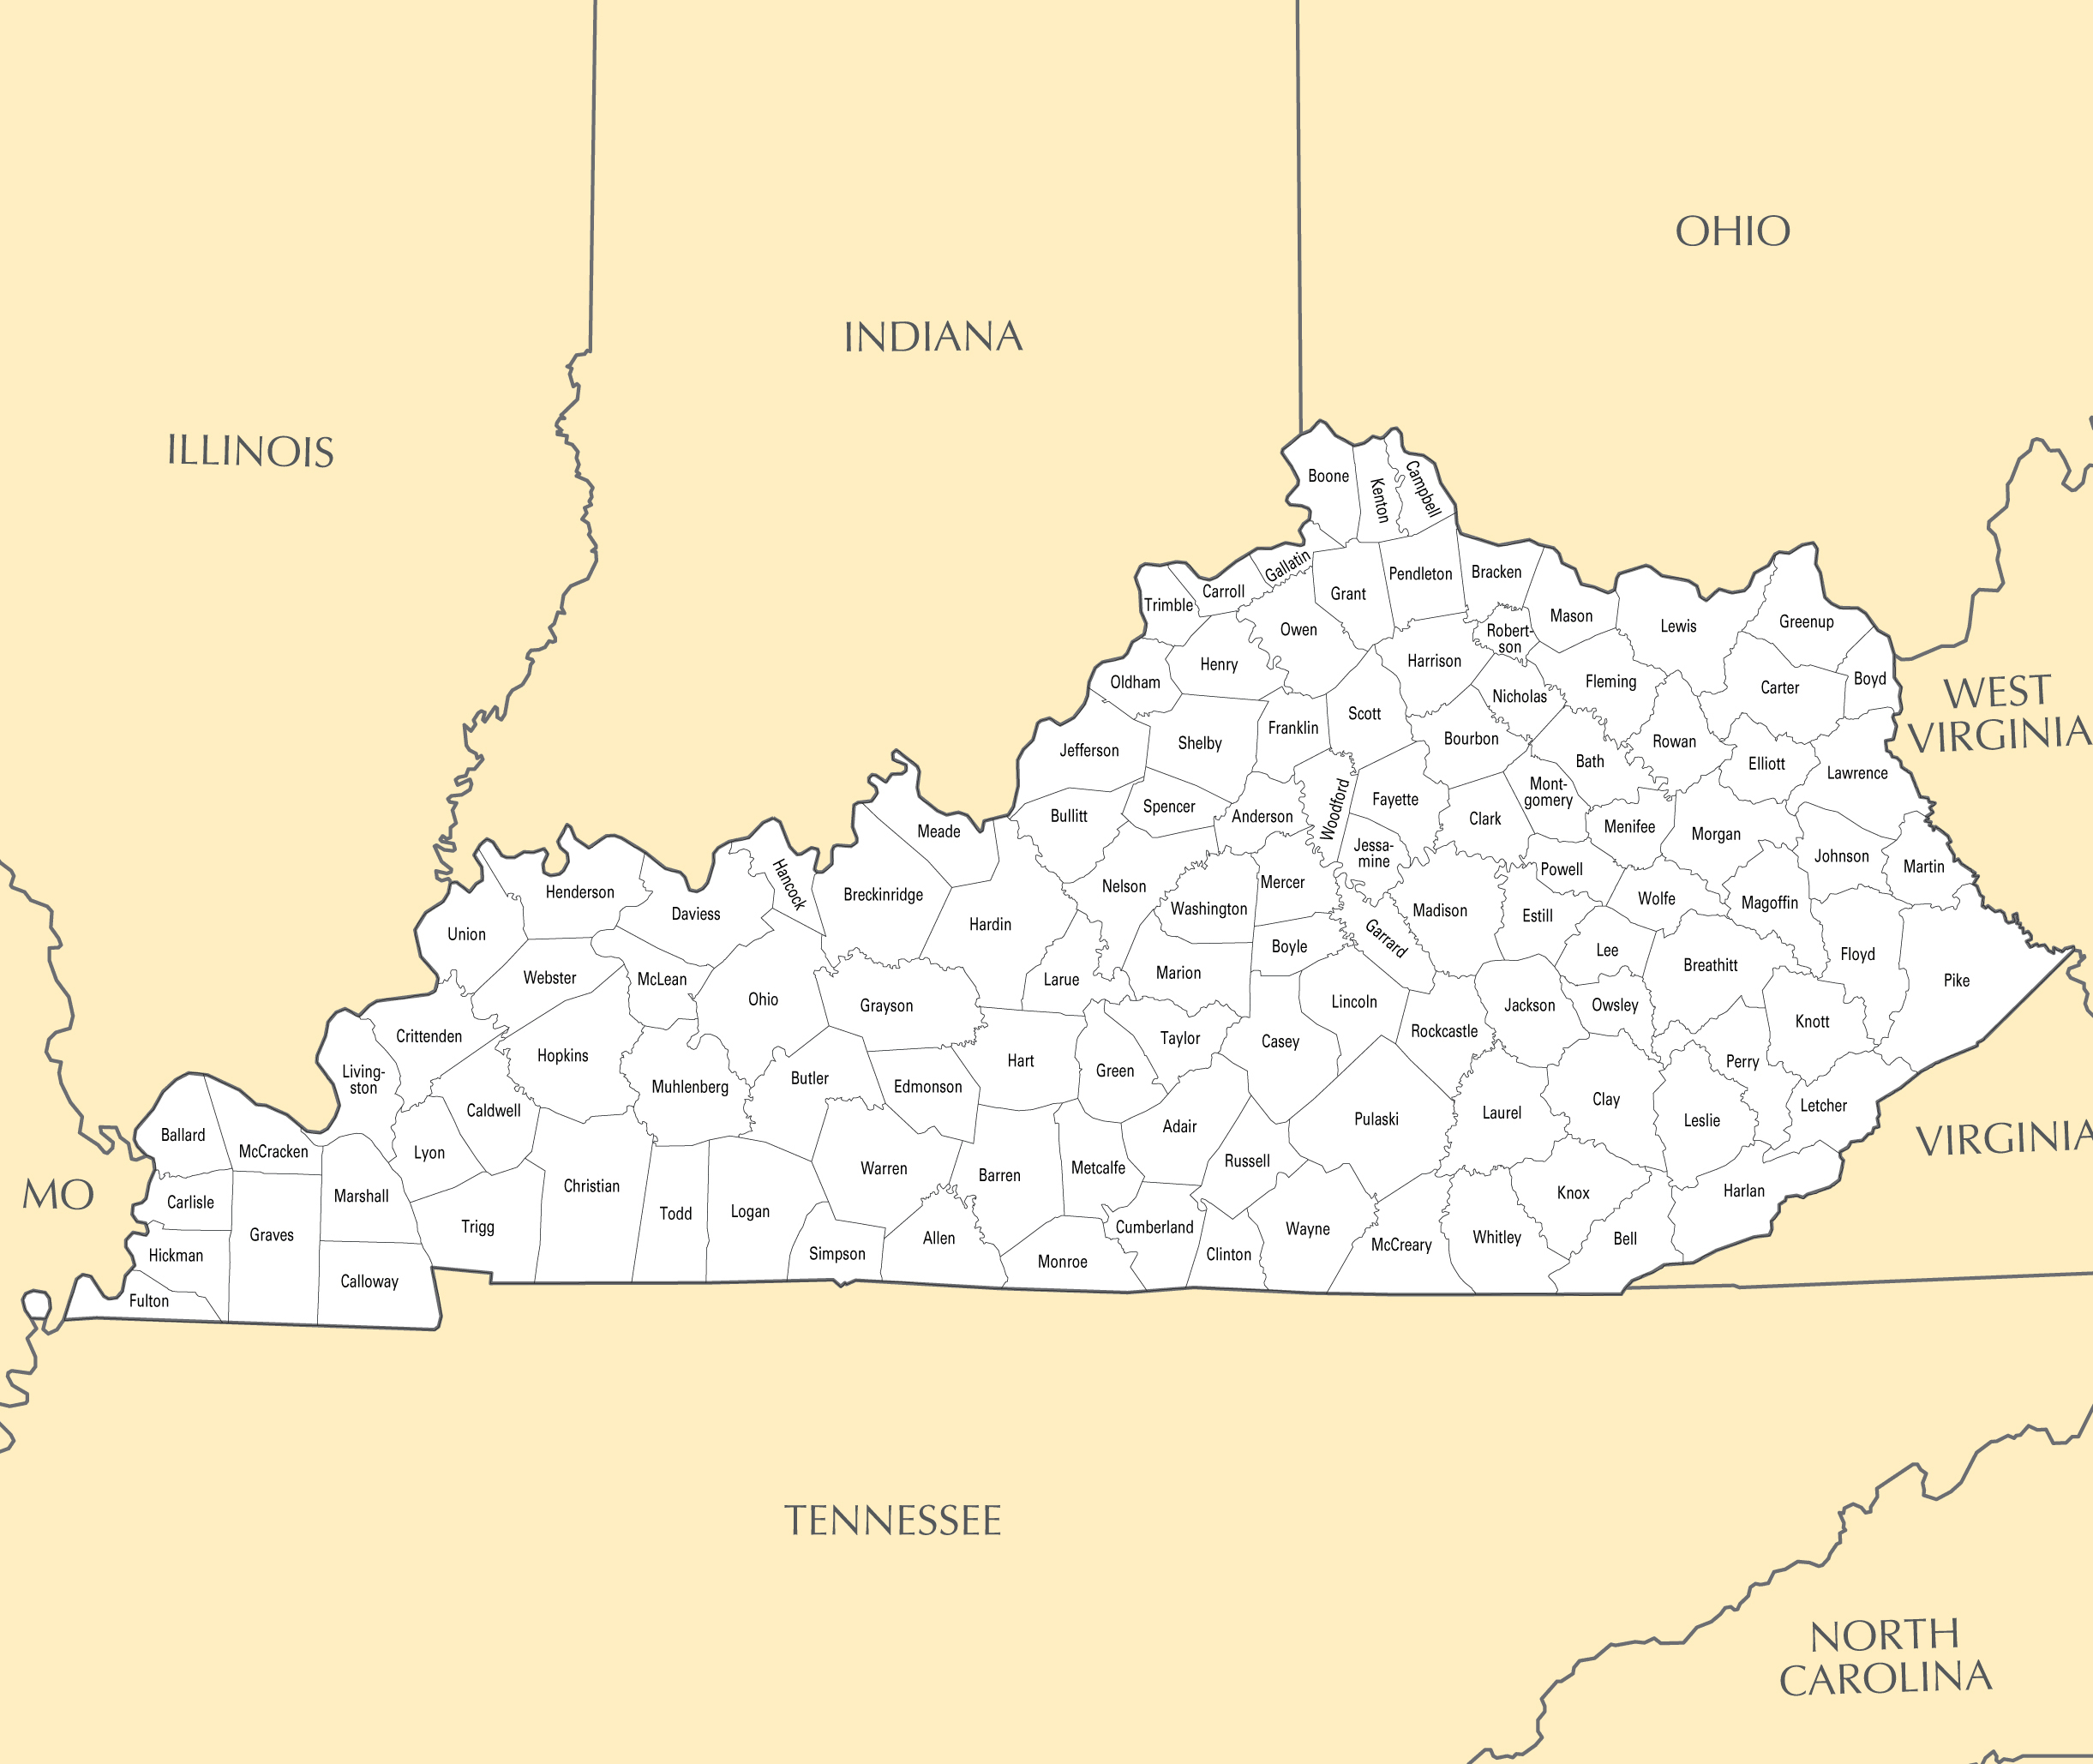 Large administrative map of Kentucky state with major cities ... on ky road map of kentucky, ky state map major cities, ky state paduke, map of alabama major cities, ky state map by county, ky state produce, ky state paducah hospitals, ky state road map, ky map with counties and cities, map of tn cities, map of all cities, ky state parks map of resorts, kentucky cities, map of ky cities, ky state map blue, ky state topographical map, map of massachusetts towns and cities, ky highway map, ky usa map,